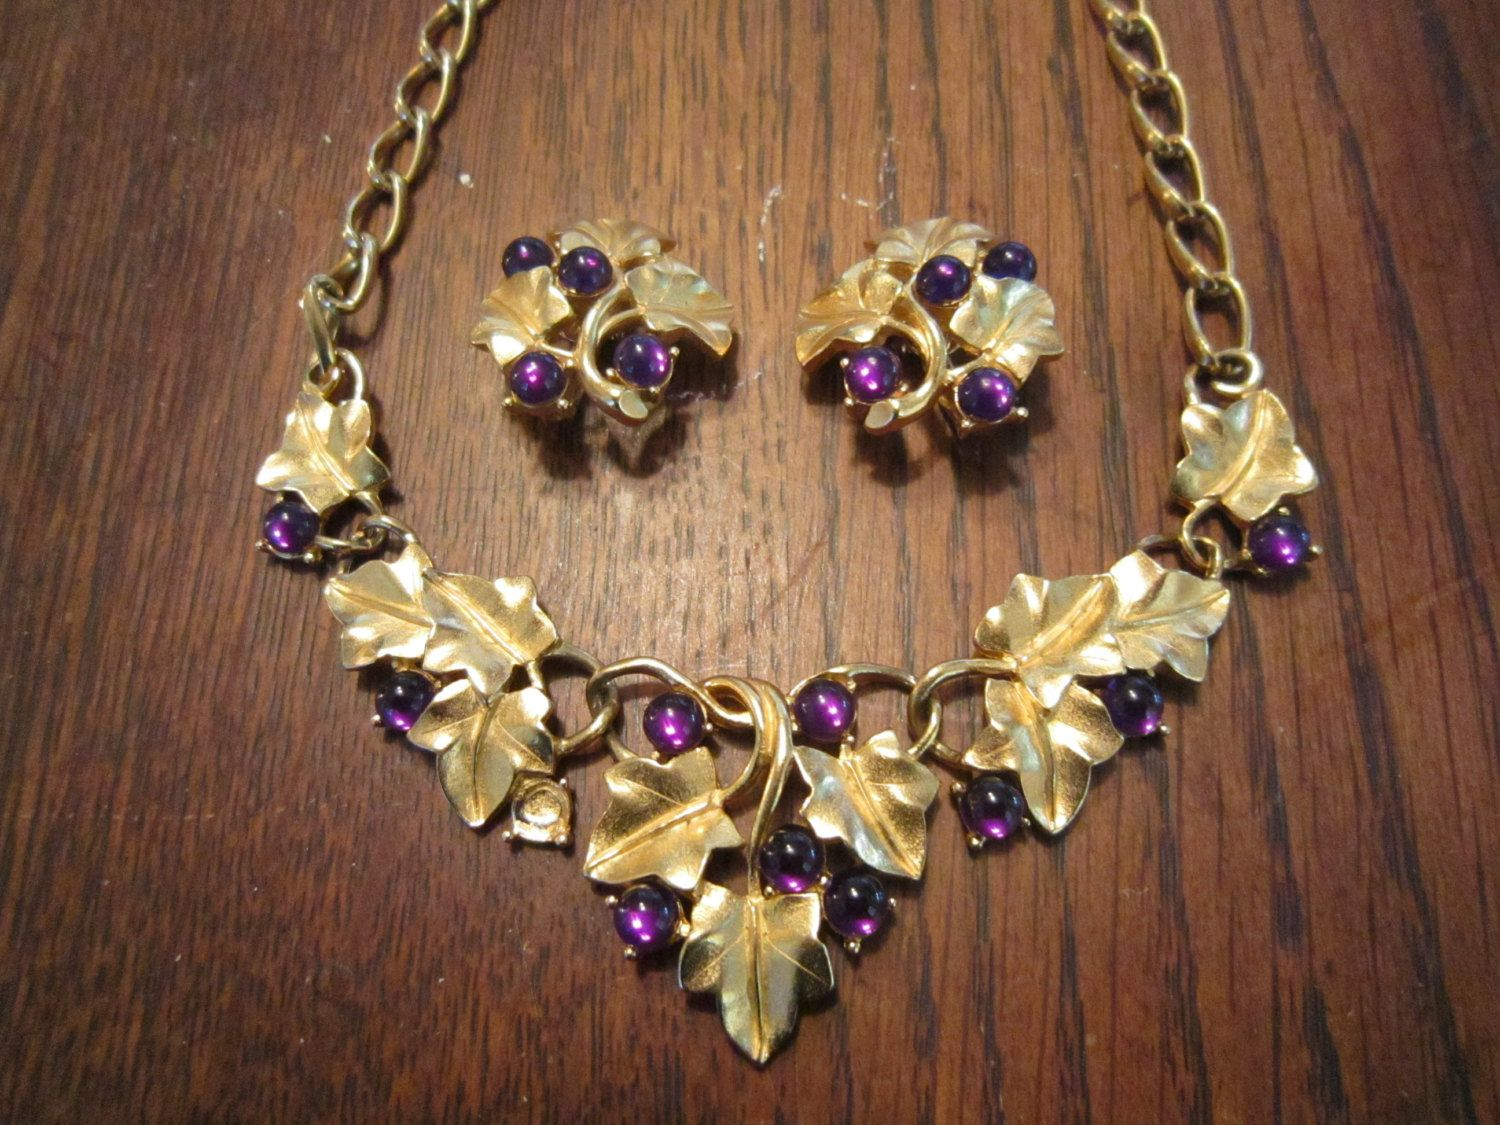 Kunio Matsumoto Grape Leaves and Grapes Matte Gold Tone Necklace and Earrings by HeartoftheSouthwest on Etsy